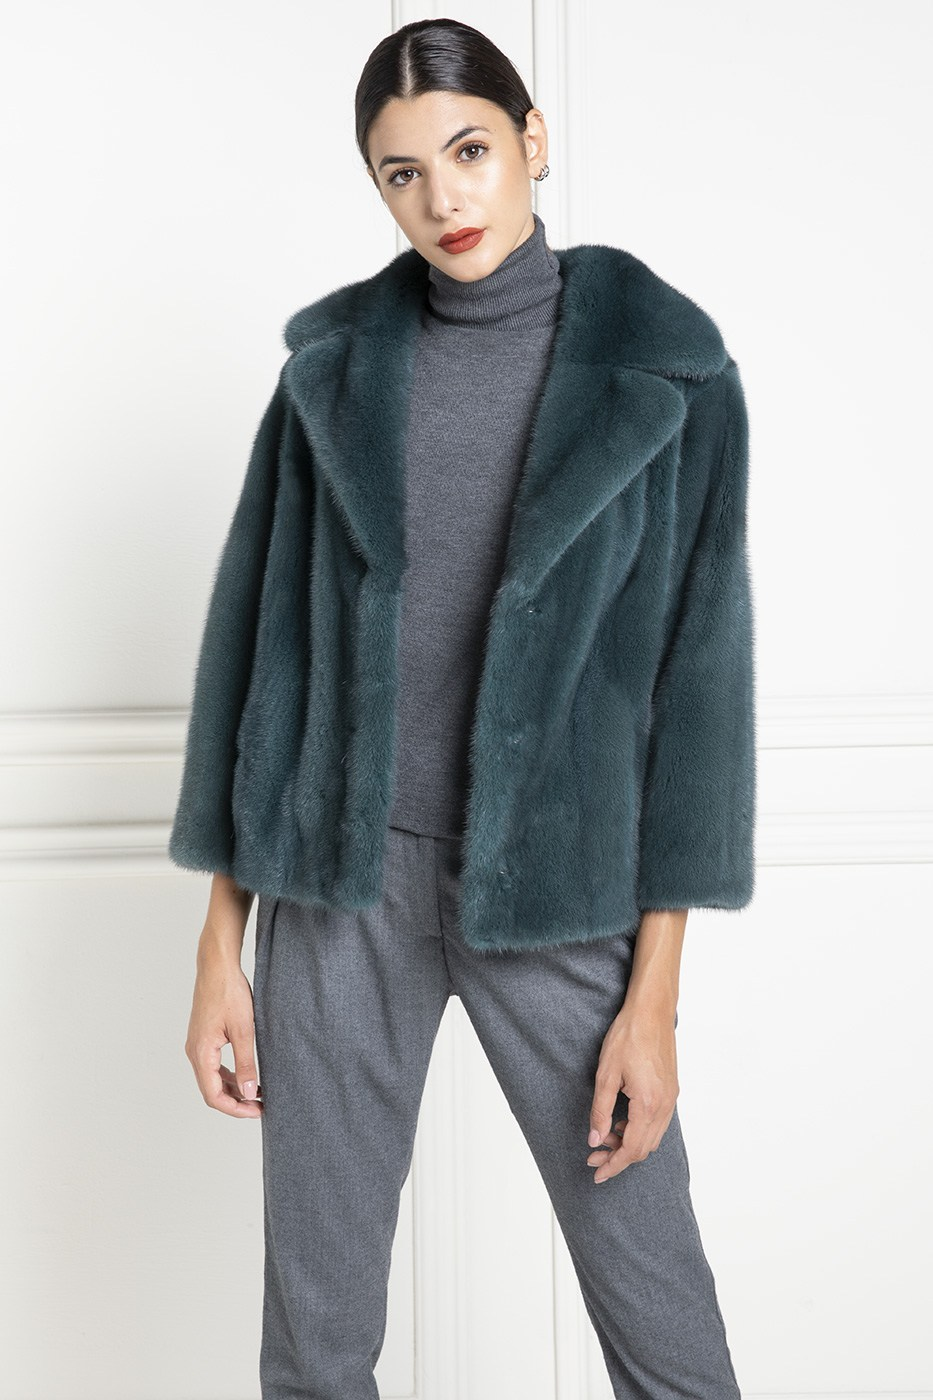 Green Mink Jacket with Shawl Collar - Length 60 cm